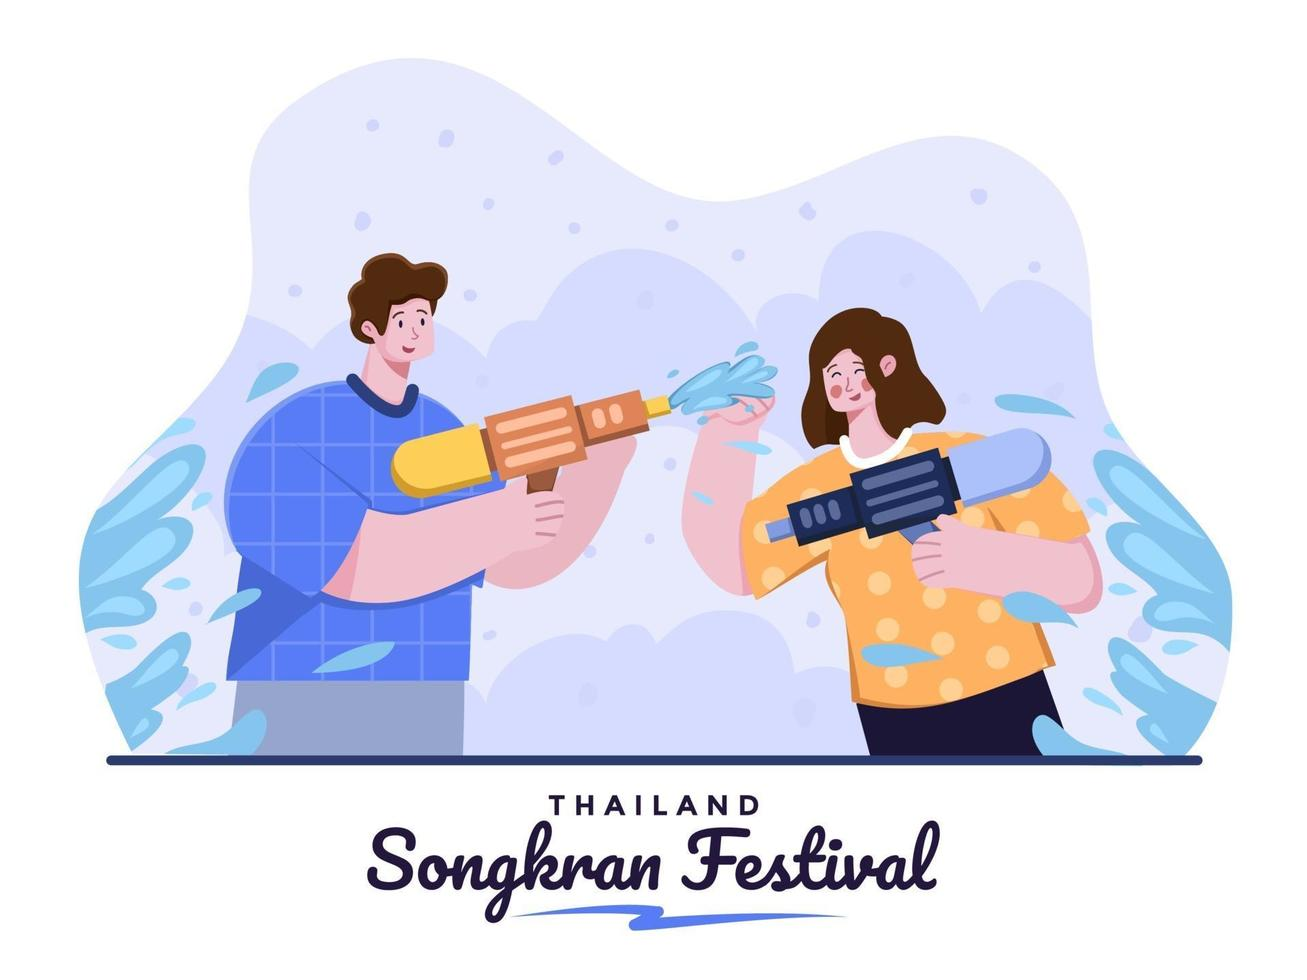 Person Celebrate Thailand Songkran festival with splashing water on each other with water gun. Thailand Water Festival Tradition. Songkran Festival Cartoon Illustration. Suitable For banner,poster etc vector